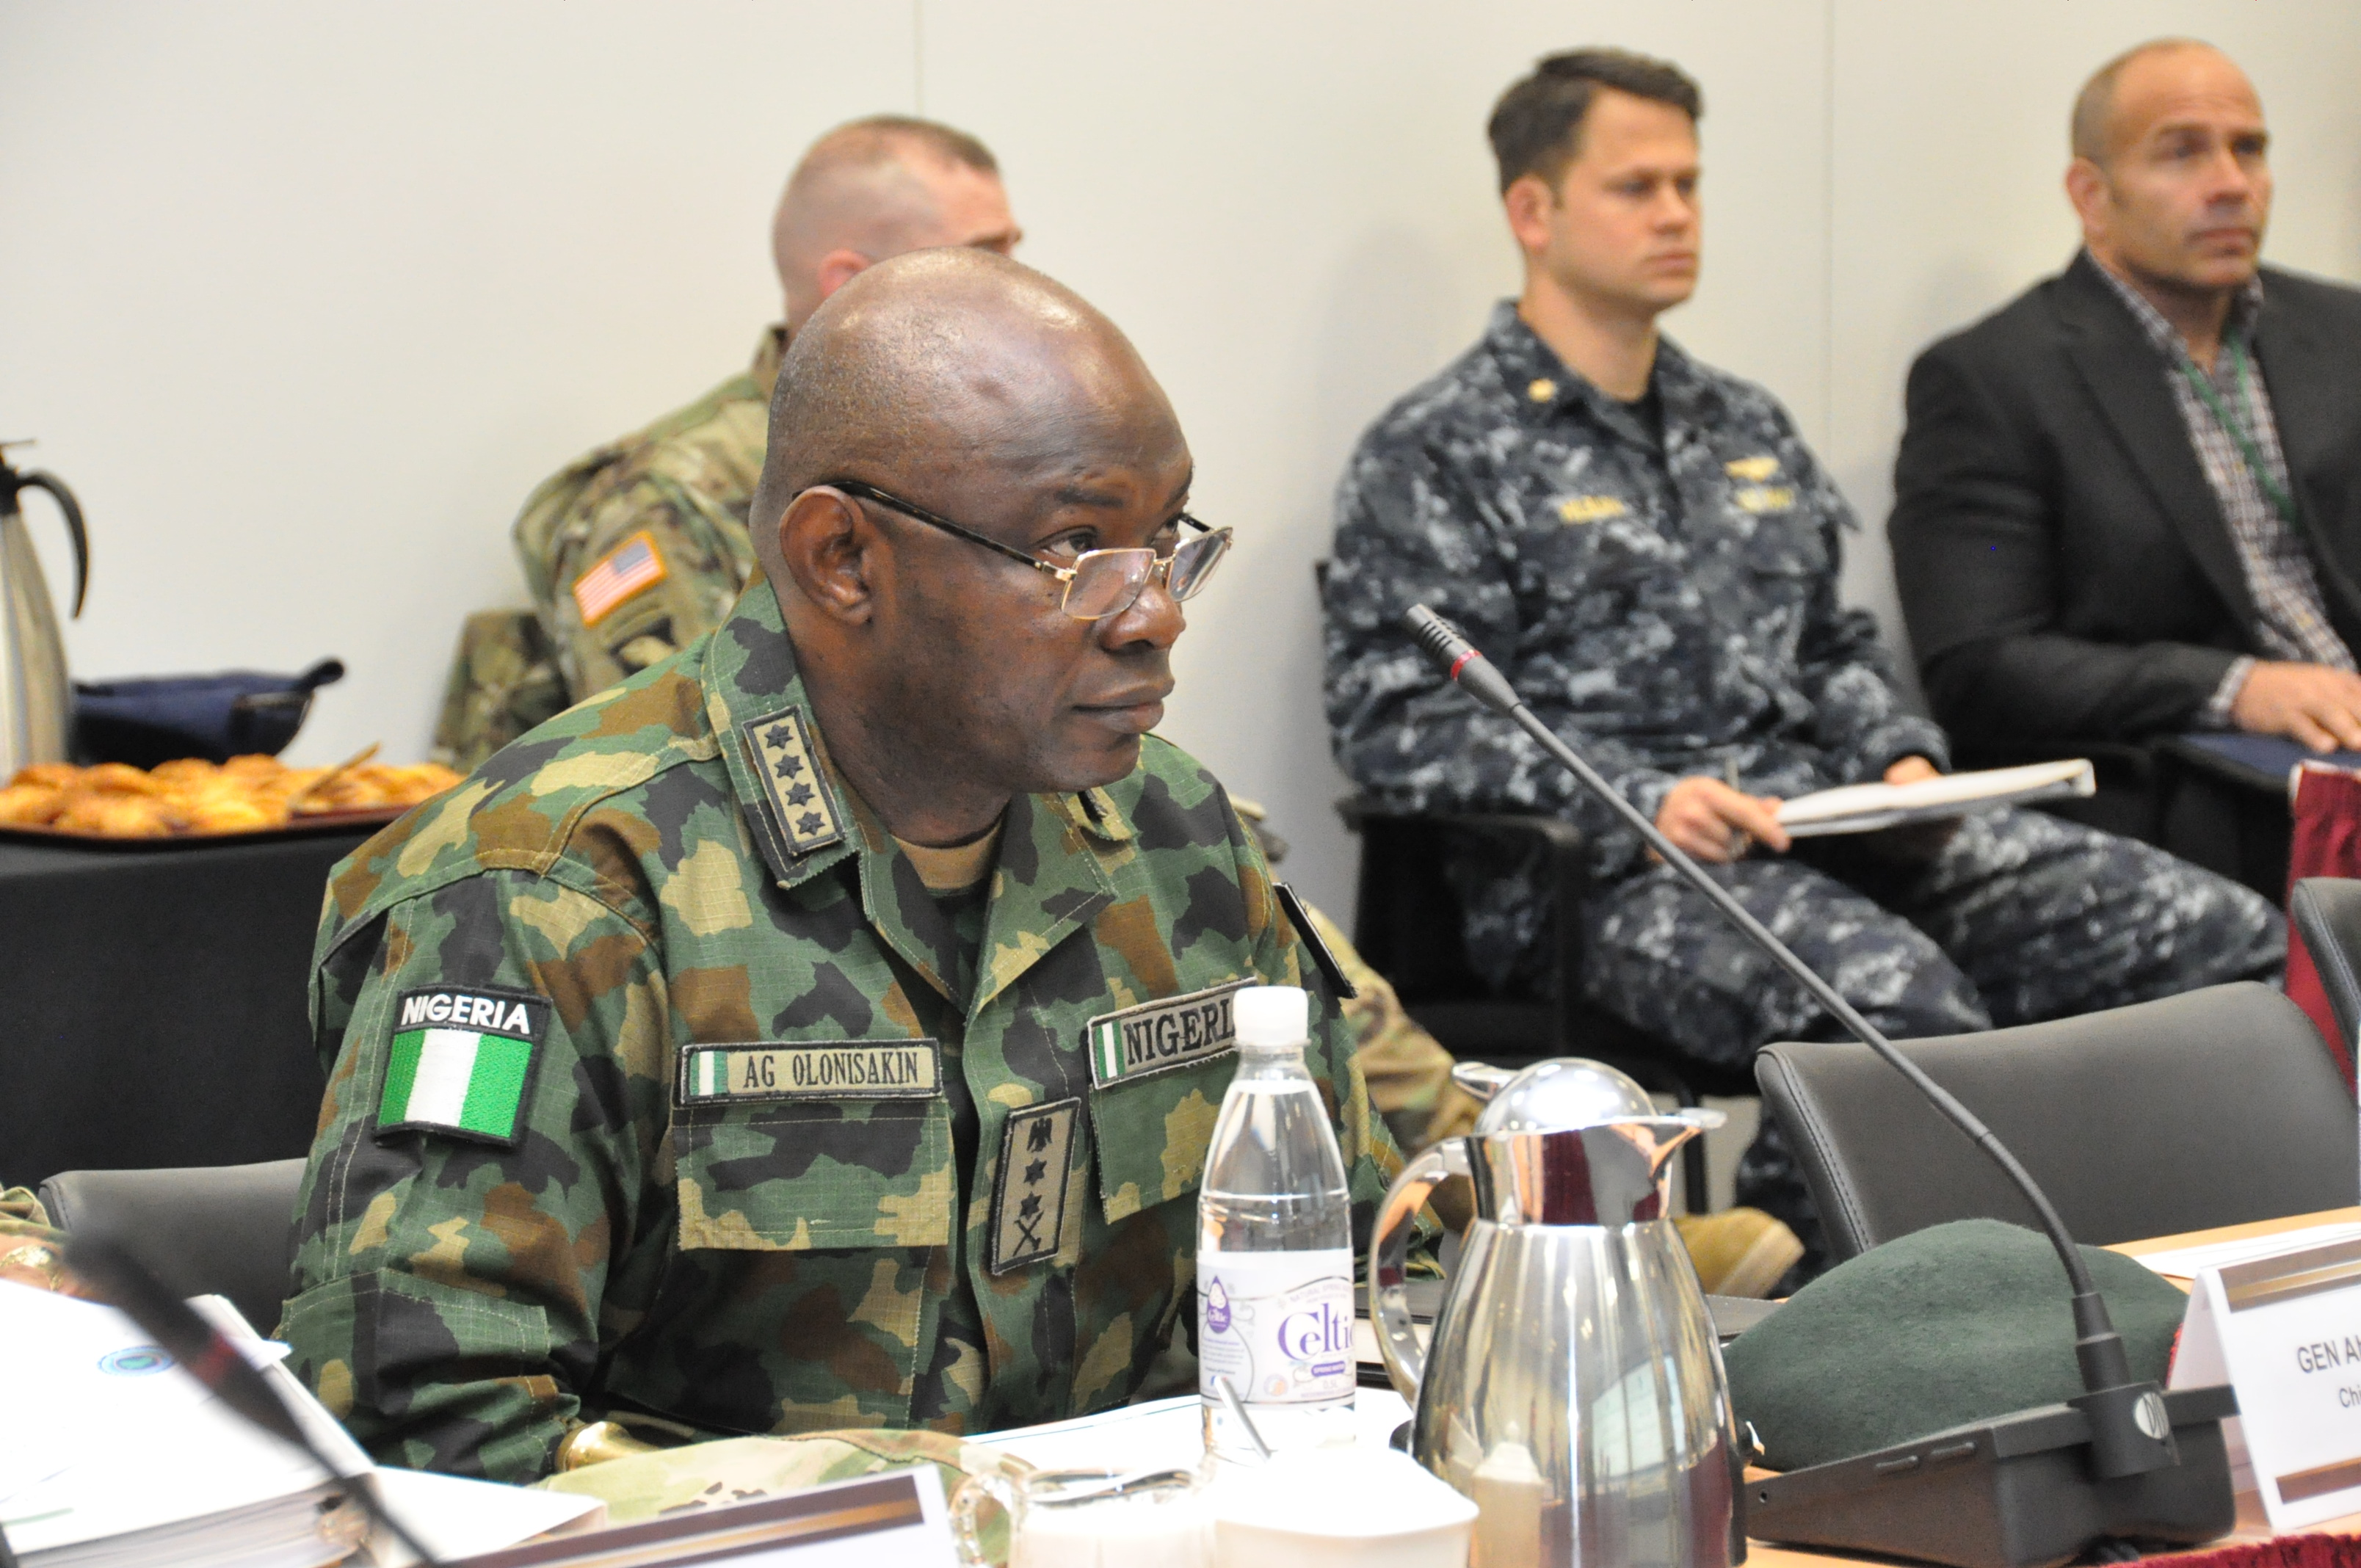 Gen. Abayomi Olonisakin, Nigeria chief of defence staff, listens as Gen. David Rodriguez, commander, U.S. Africa Command delivers opening remarks for a two-day meeting with senior AFRICOM commanders and leaders. The purpose of the visit was to reinforce the importance of a strong US-Nigeria security cooperation relationship, with topics focused on ways to counter terrorism, joint operations, logistics and maritime security in the Gulf of Guinea, Feb. 9, 2016, U.S. Army Garrison Stuttgart, Germany. (Photo by Brenda Law, U.S. Africa Command Public Affairs/RELEASED)